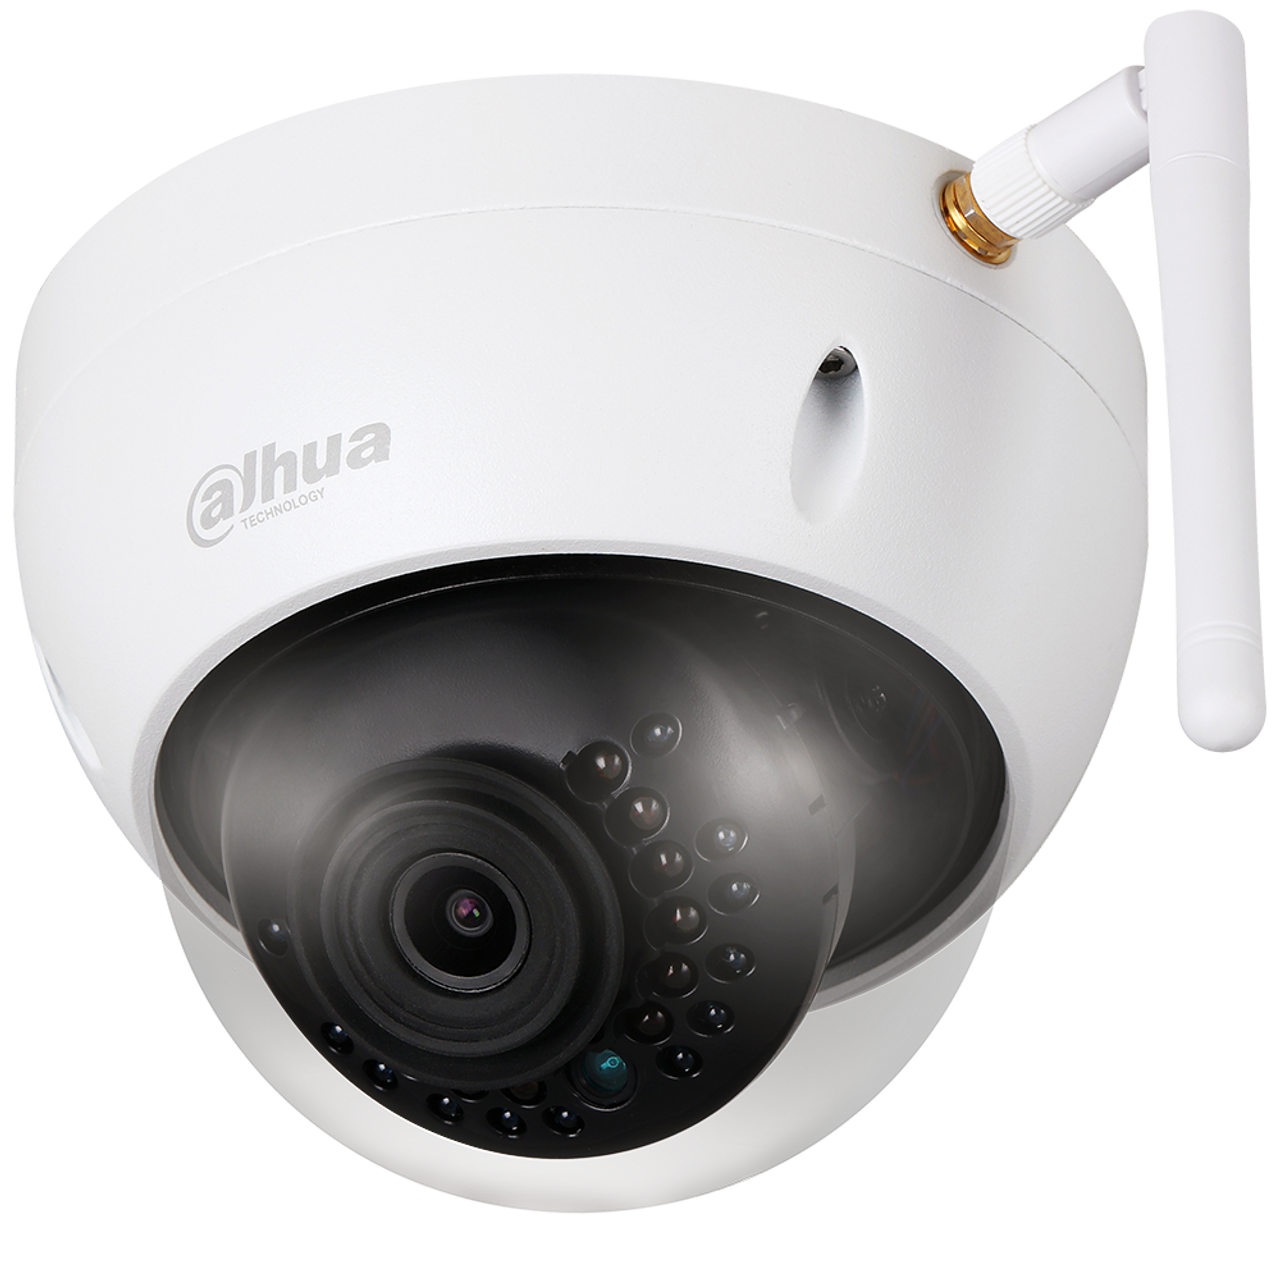 Dahua N41BL12-W 4MP WiFi MiniDome Network Camera